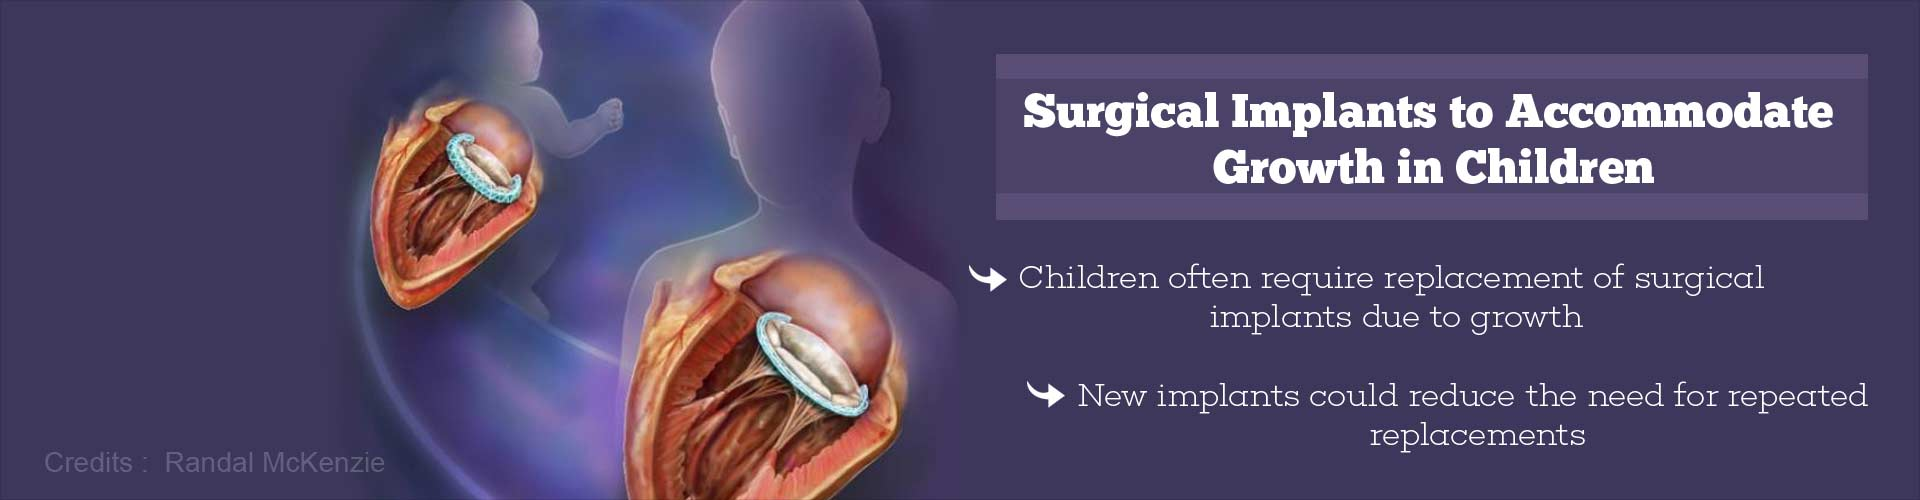 Surgical implants to accommodate growth in children - Children often require replacement of surgical implants due to growth - New implants could reduce the need for repeated replacements